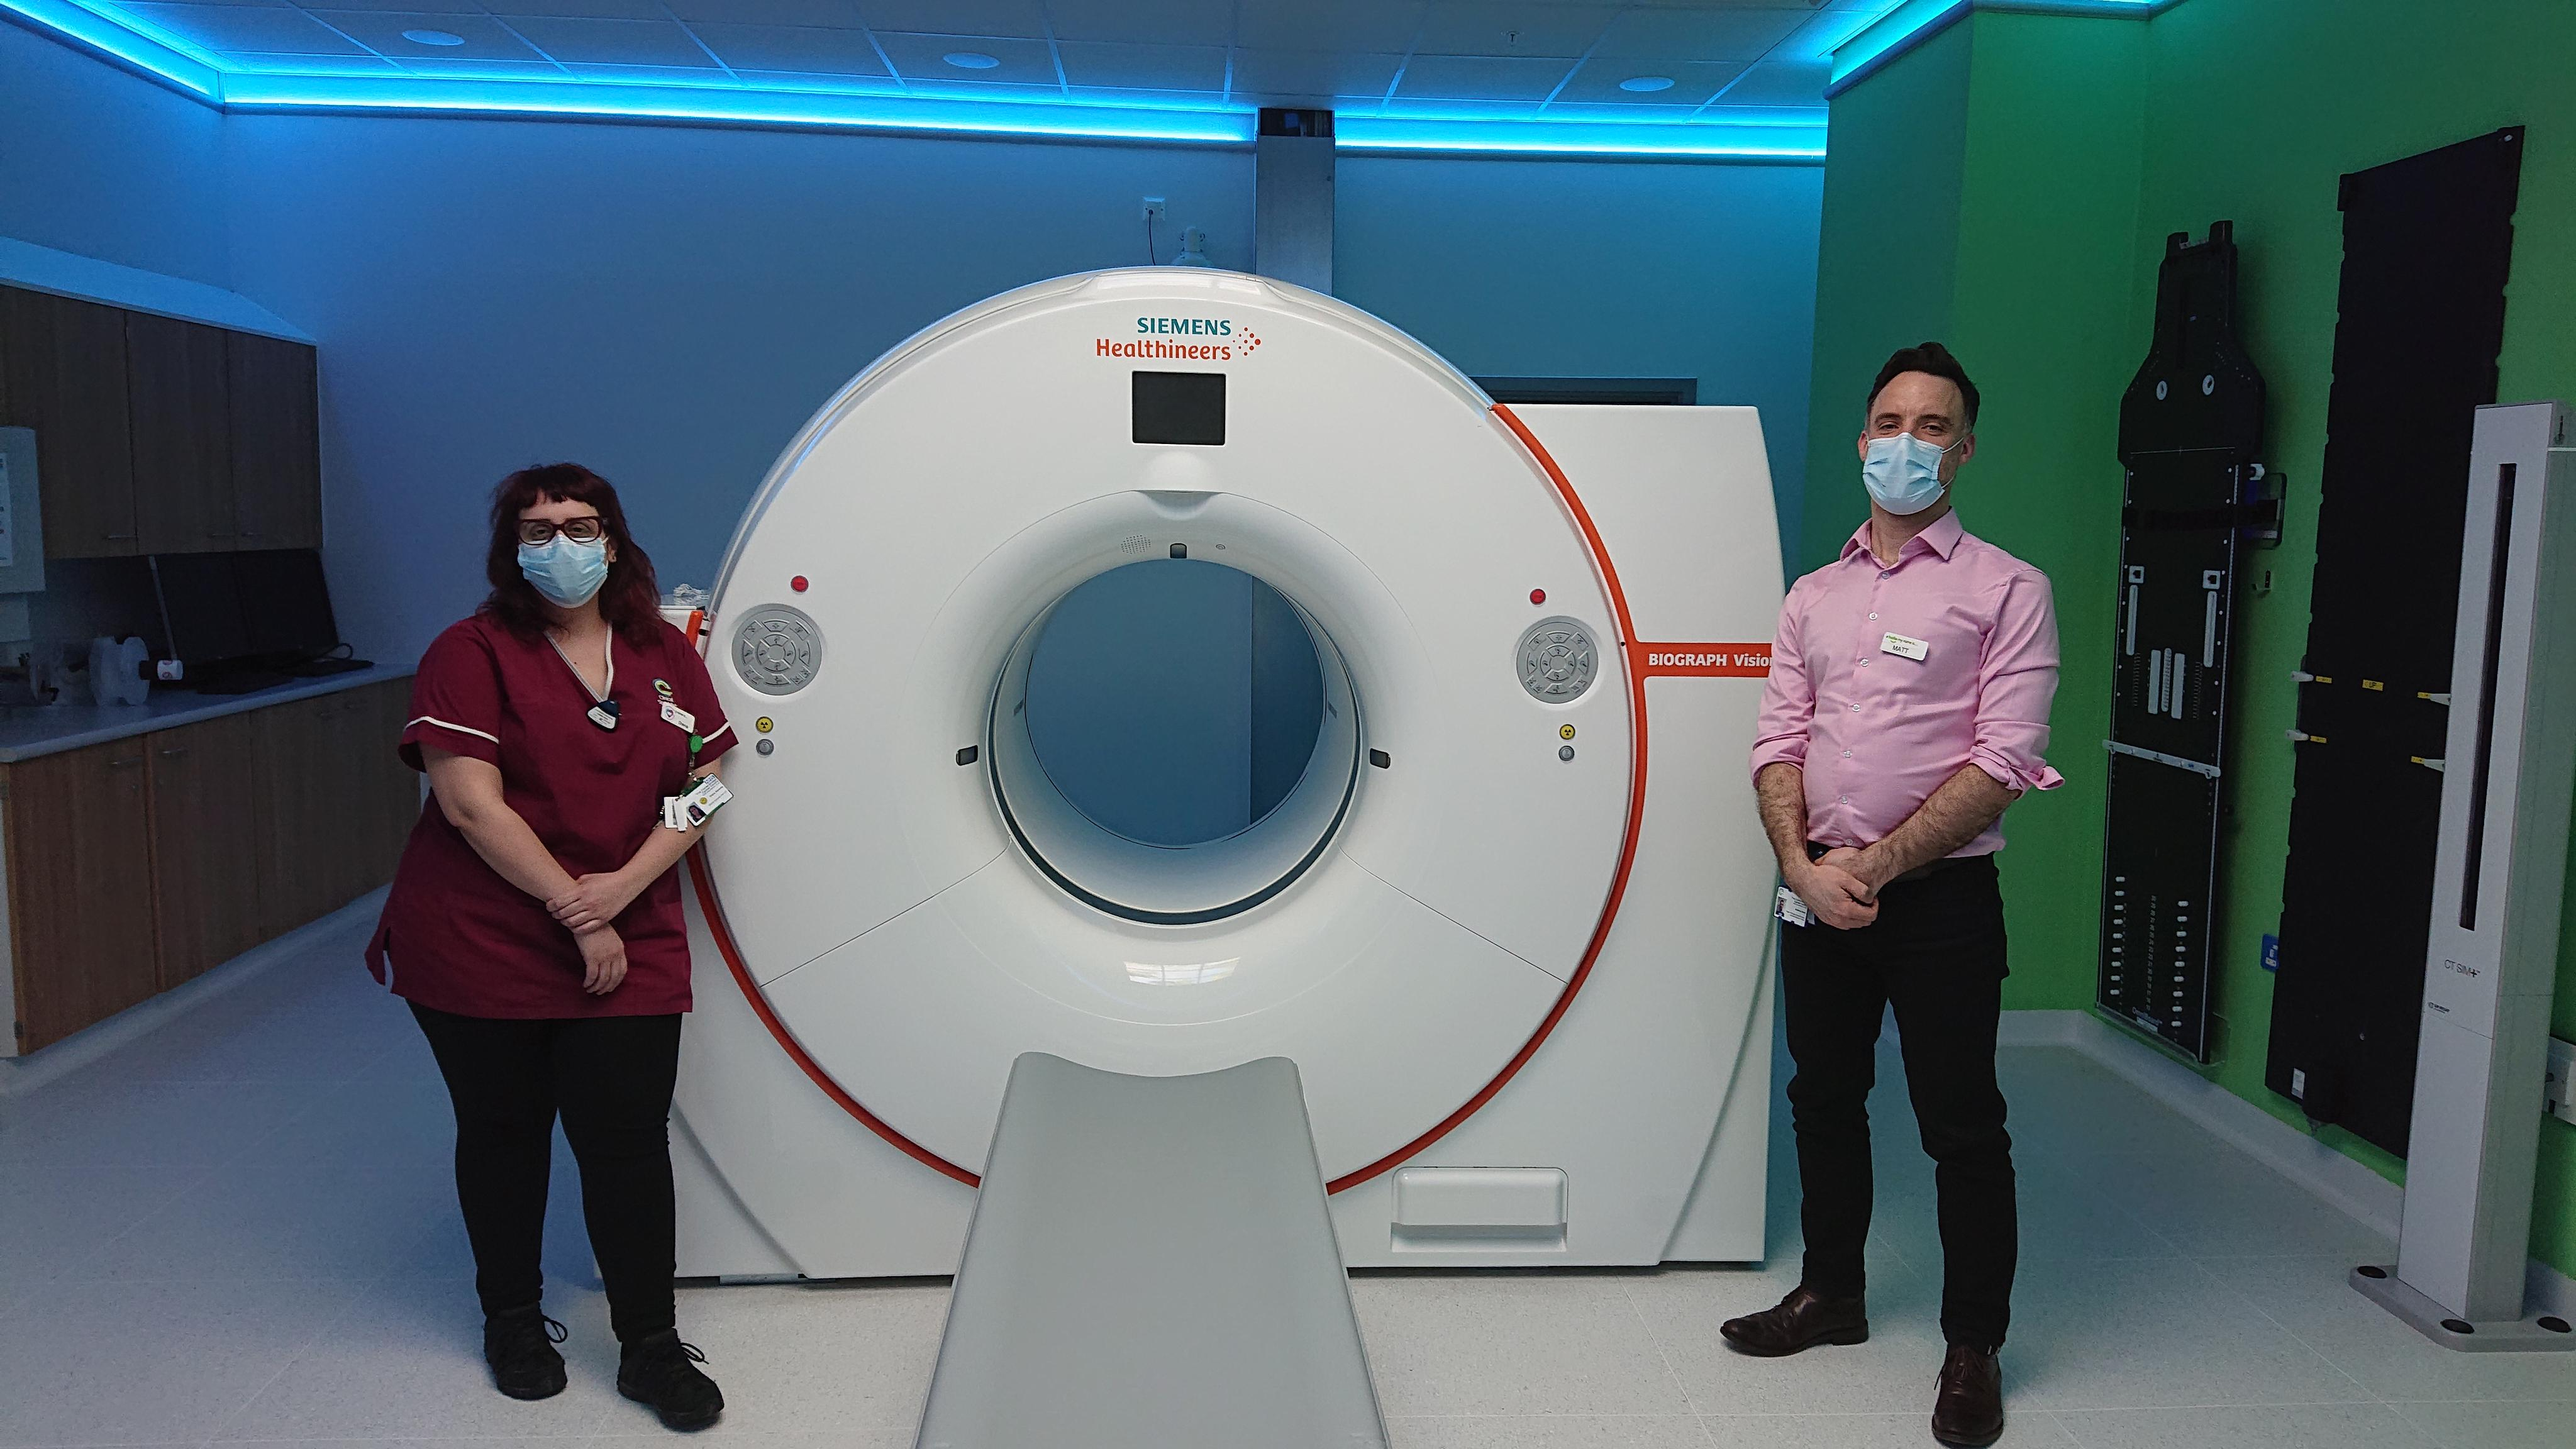 Liverpool's first cancer hospital bolsters COVID-19 response with advanced imaging systems